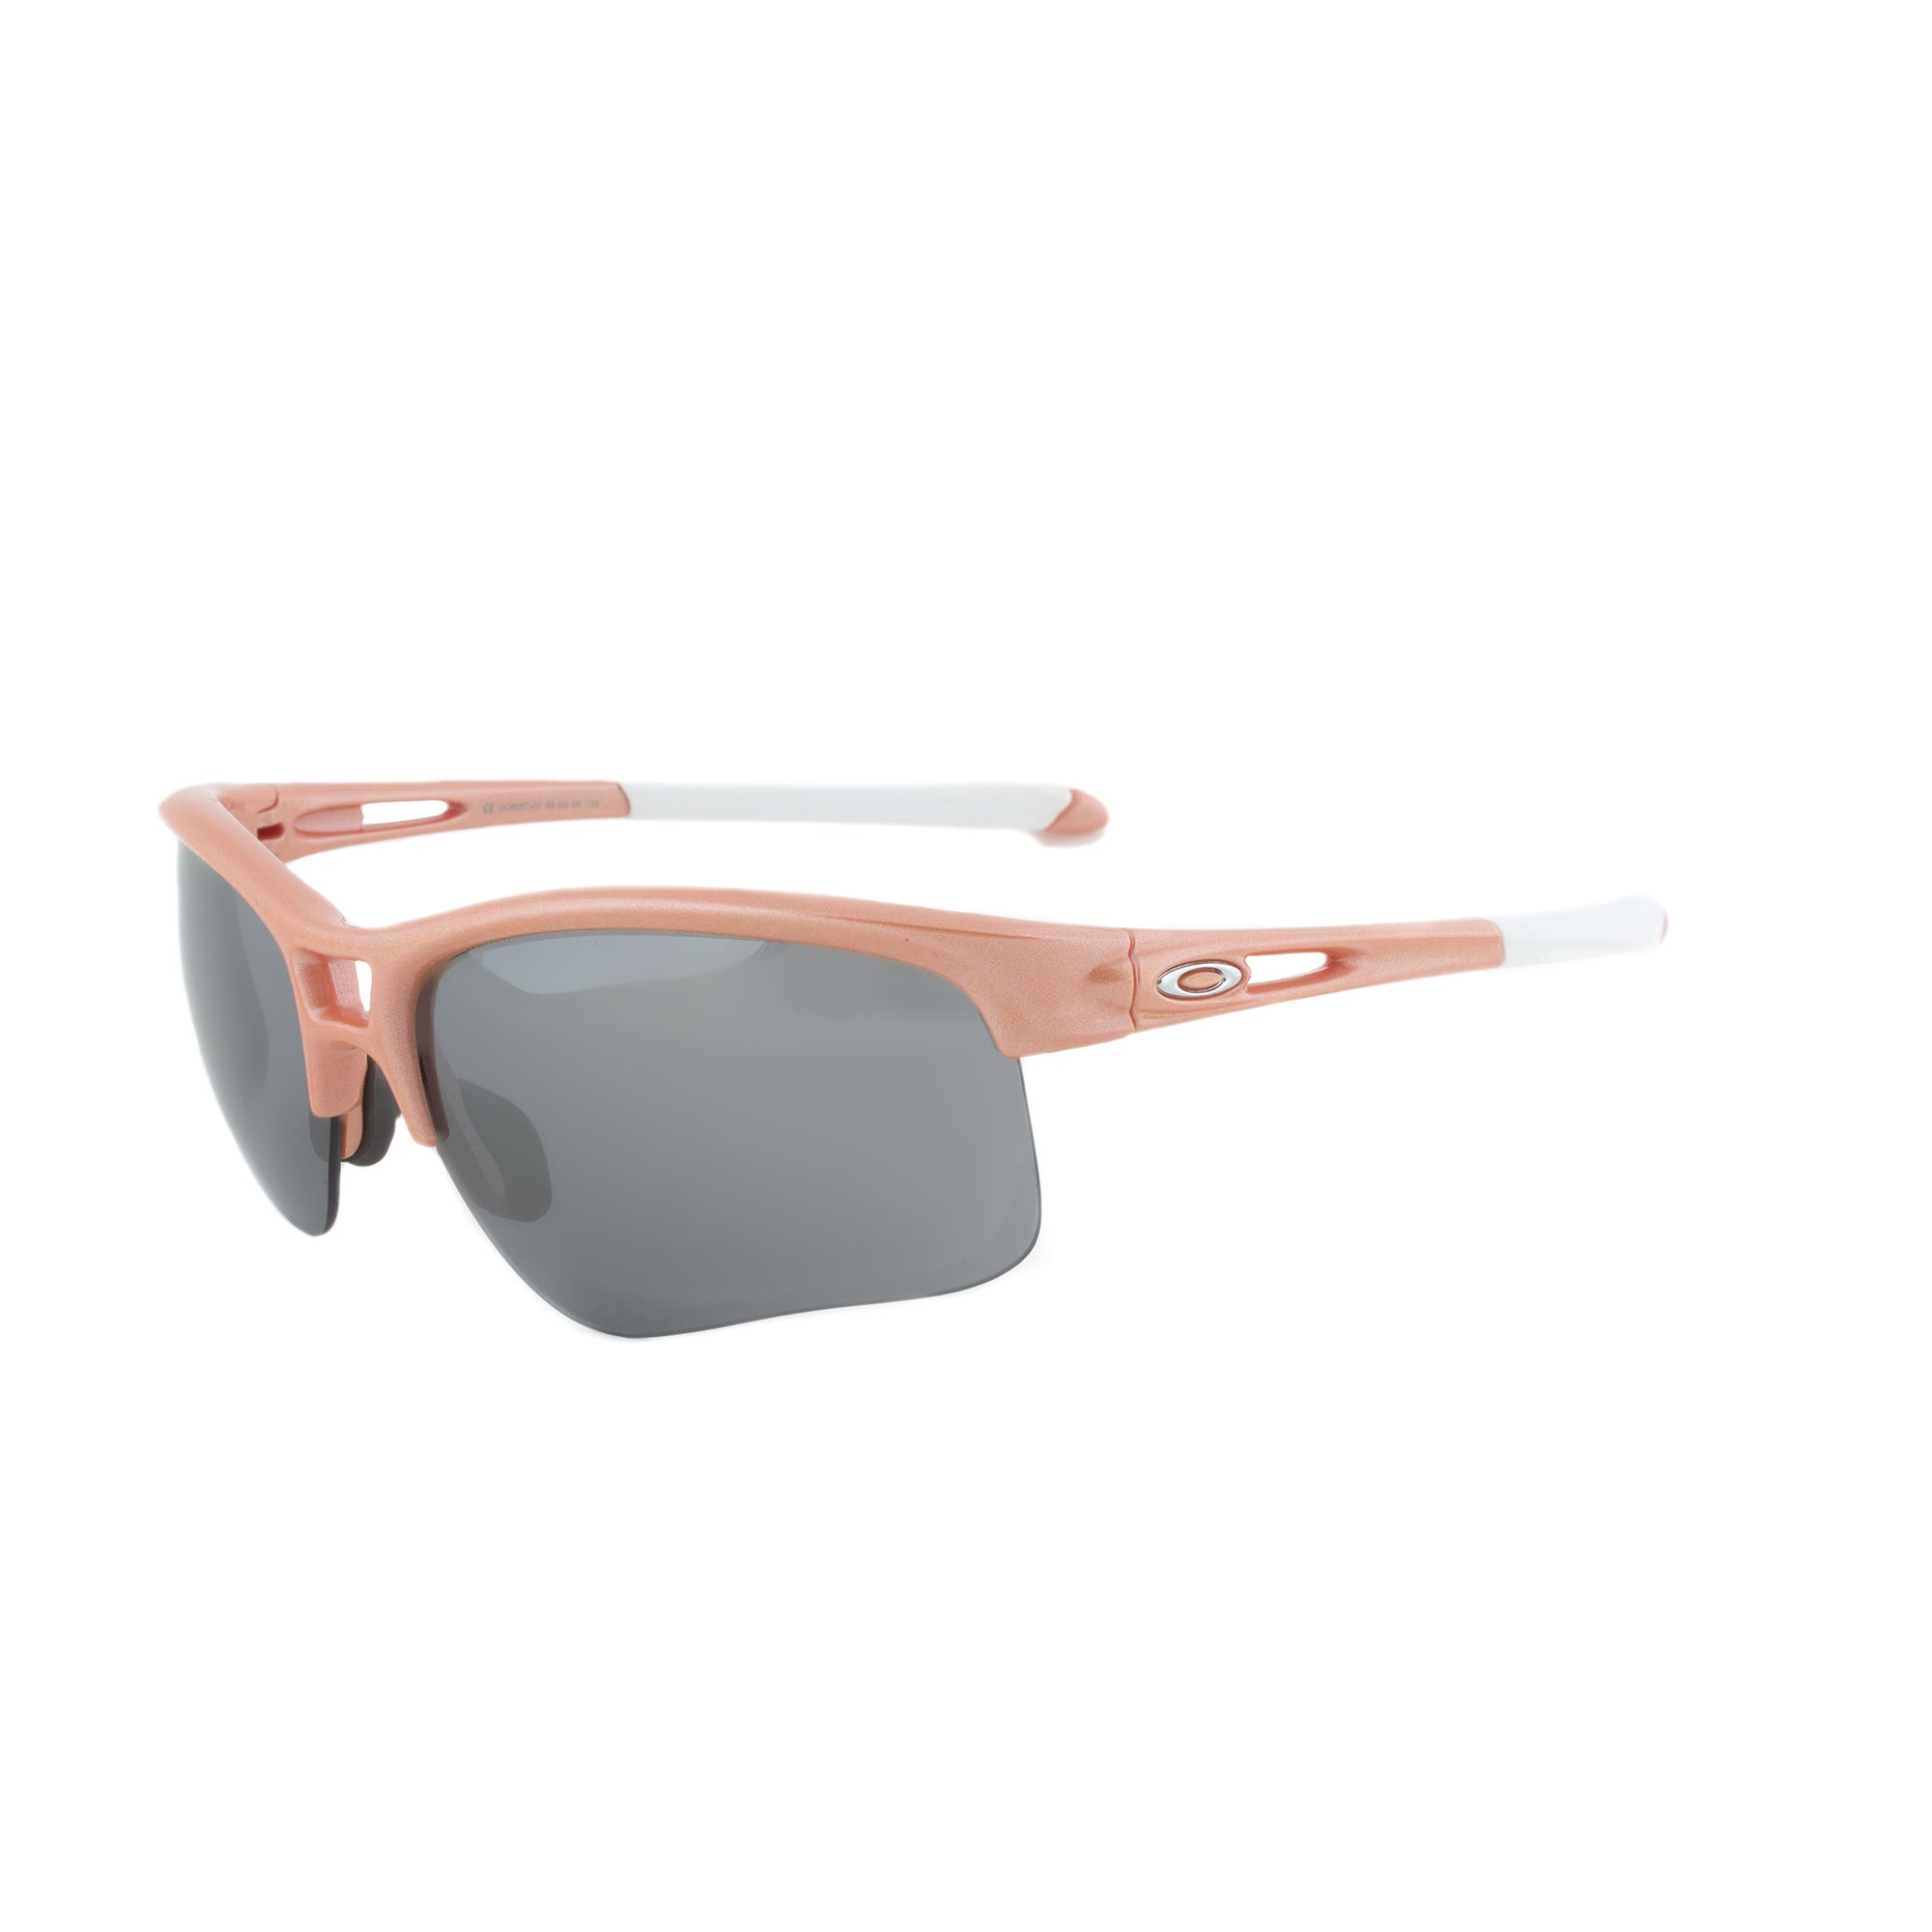 Shop Oakley RPM Edge Sunglasses OO9257-02, Grapefruit Pearl Frame, Black  Iridium Lens - Free Shipping Today - Overstock.com - 10367601